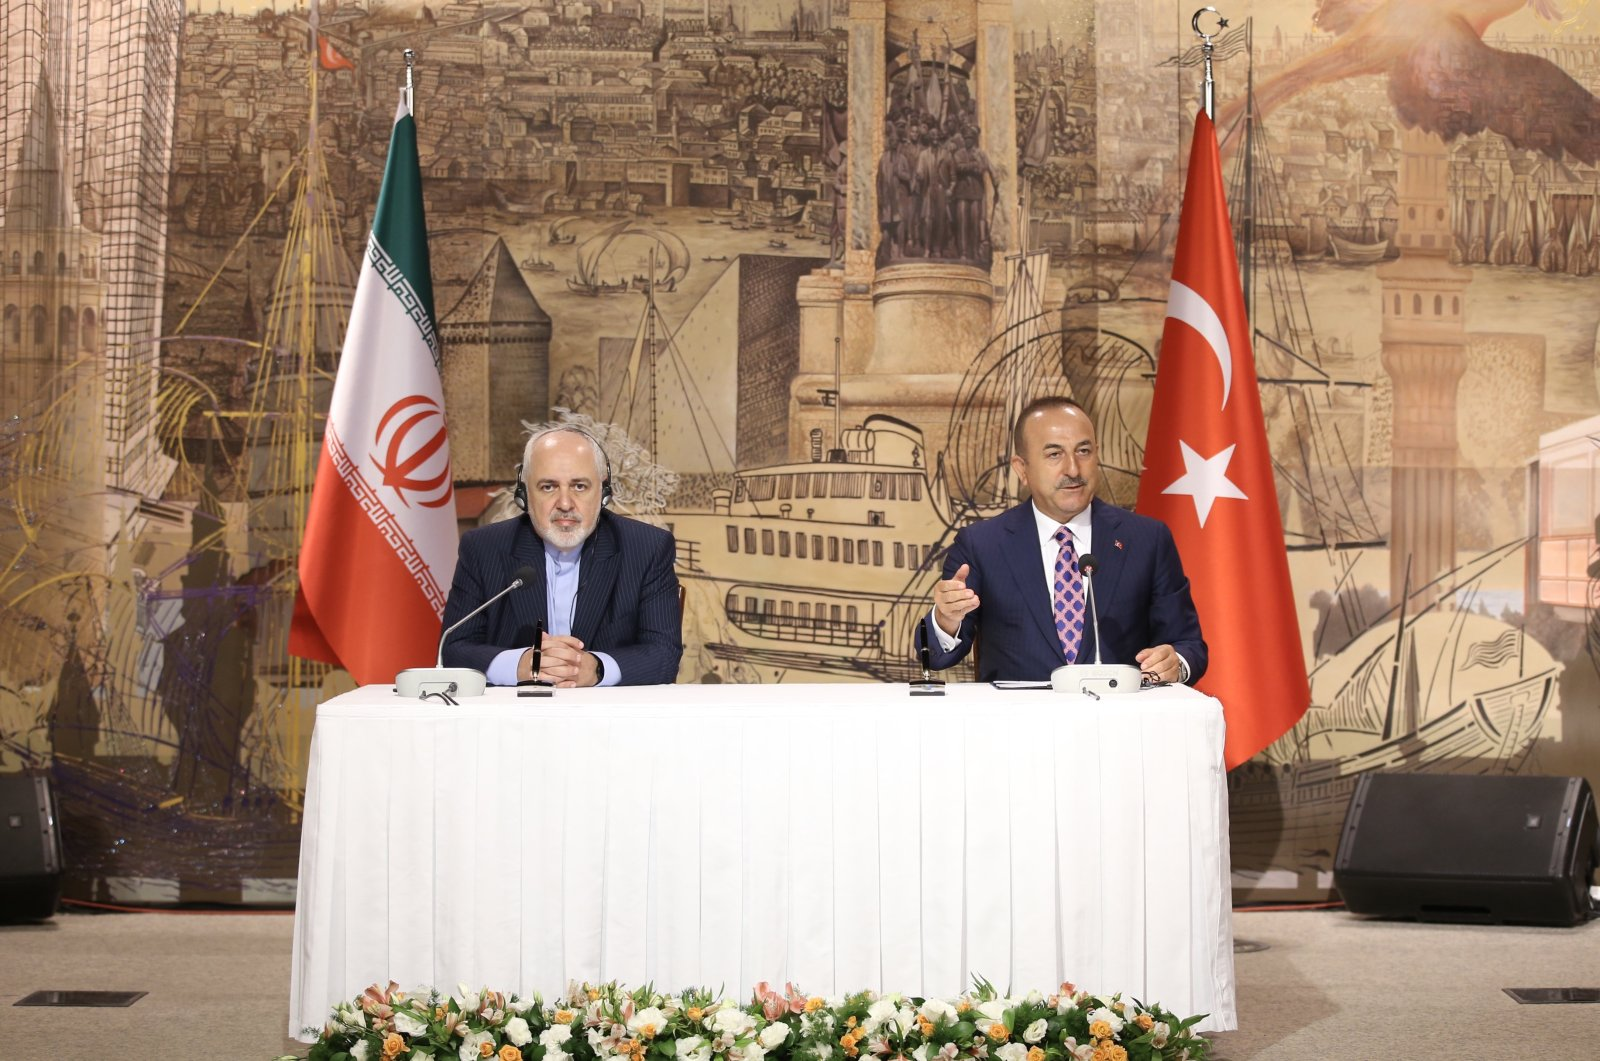 Foreign Minister Mevlüt Çavuşoğlu attends a joint news conference with Iranian counterpart Javad Zarif in Istanbul on June 16, 2020 (AA File Photo)